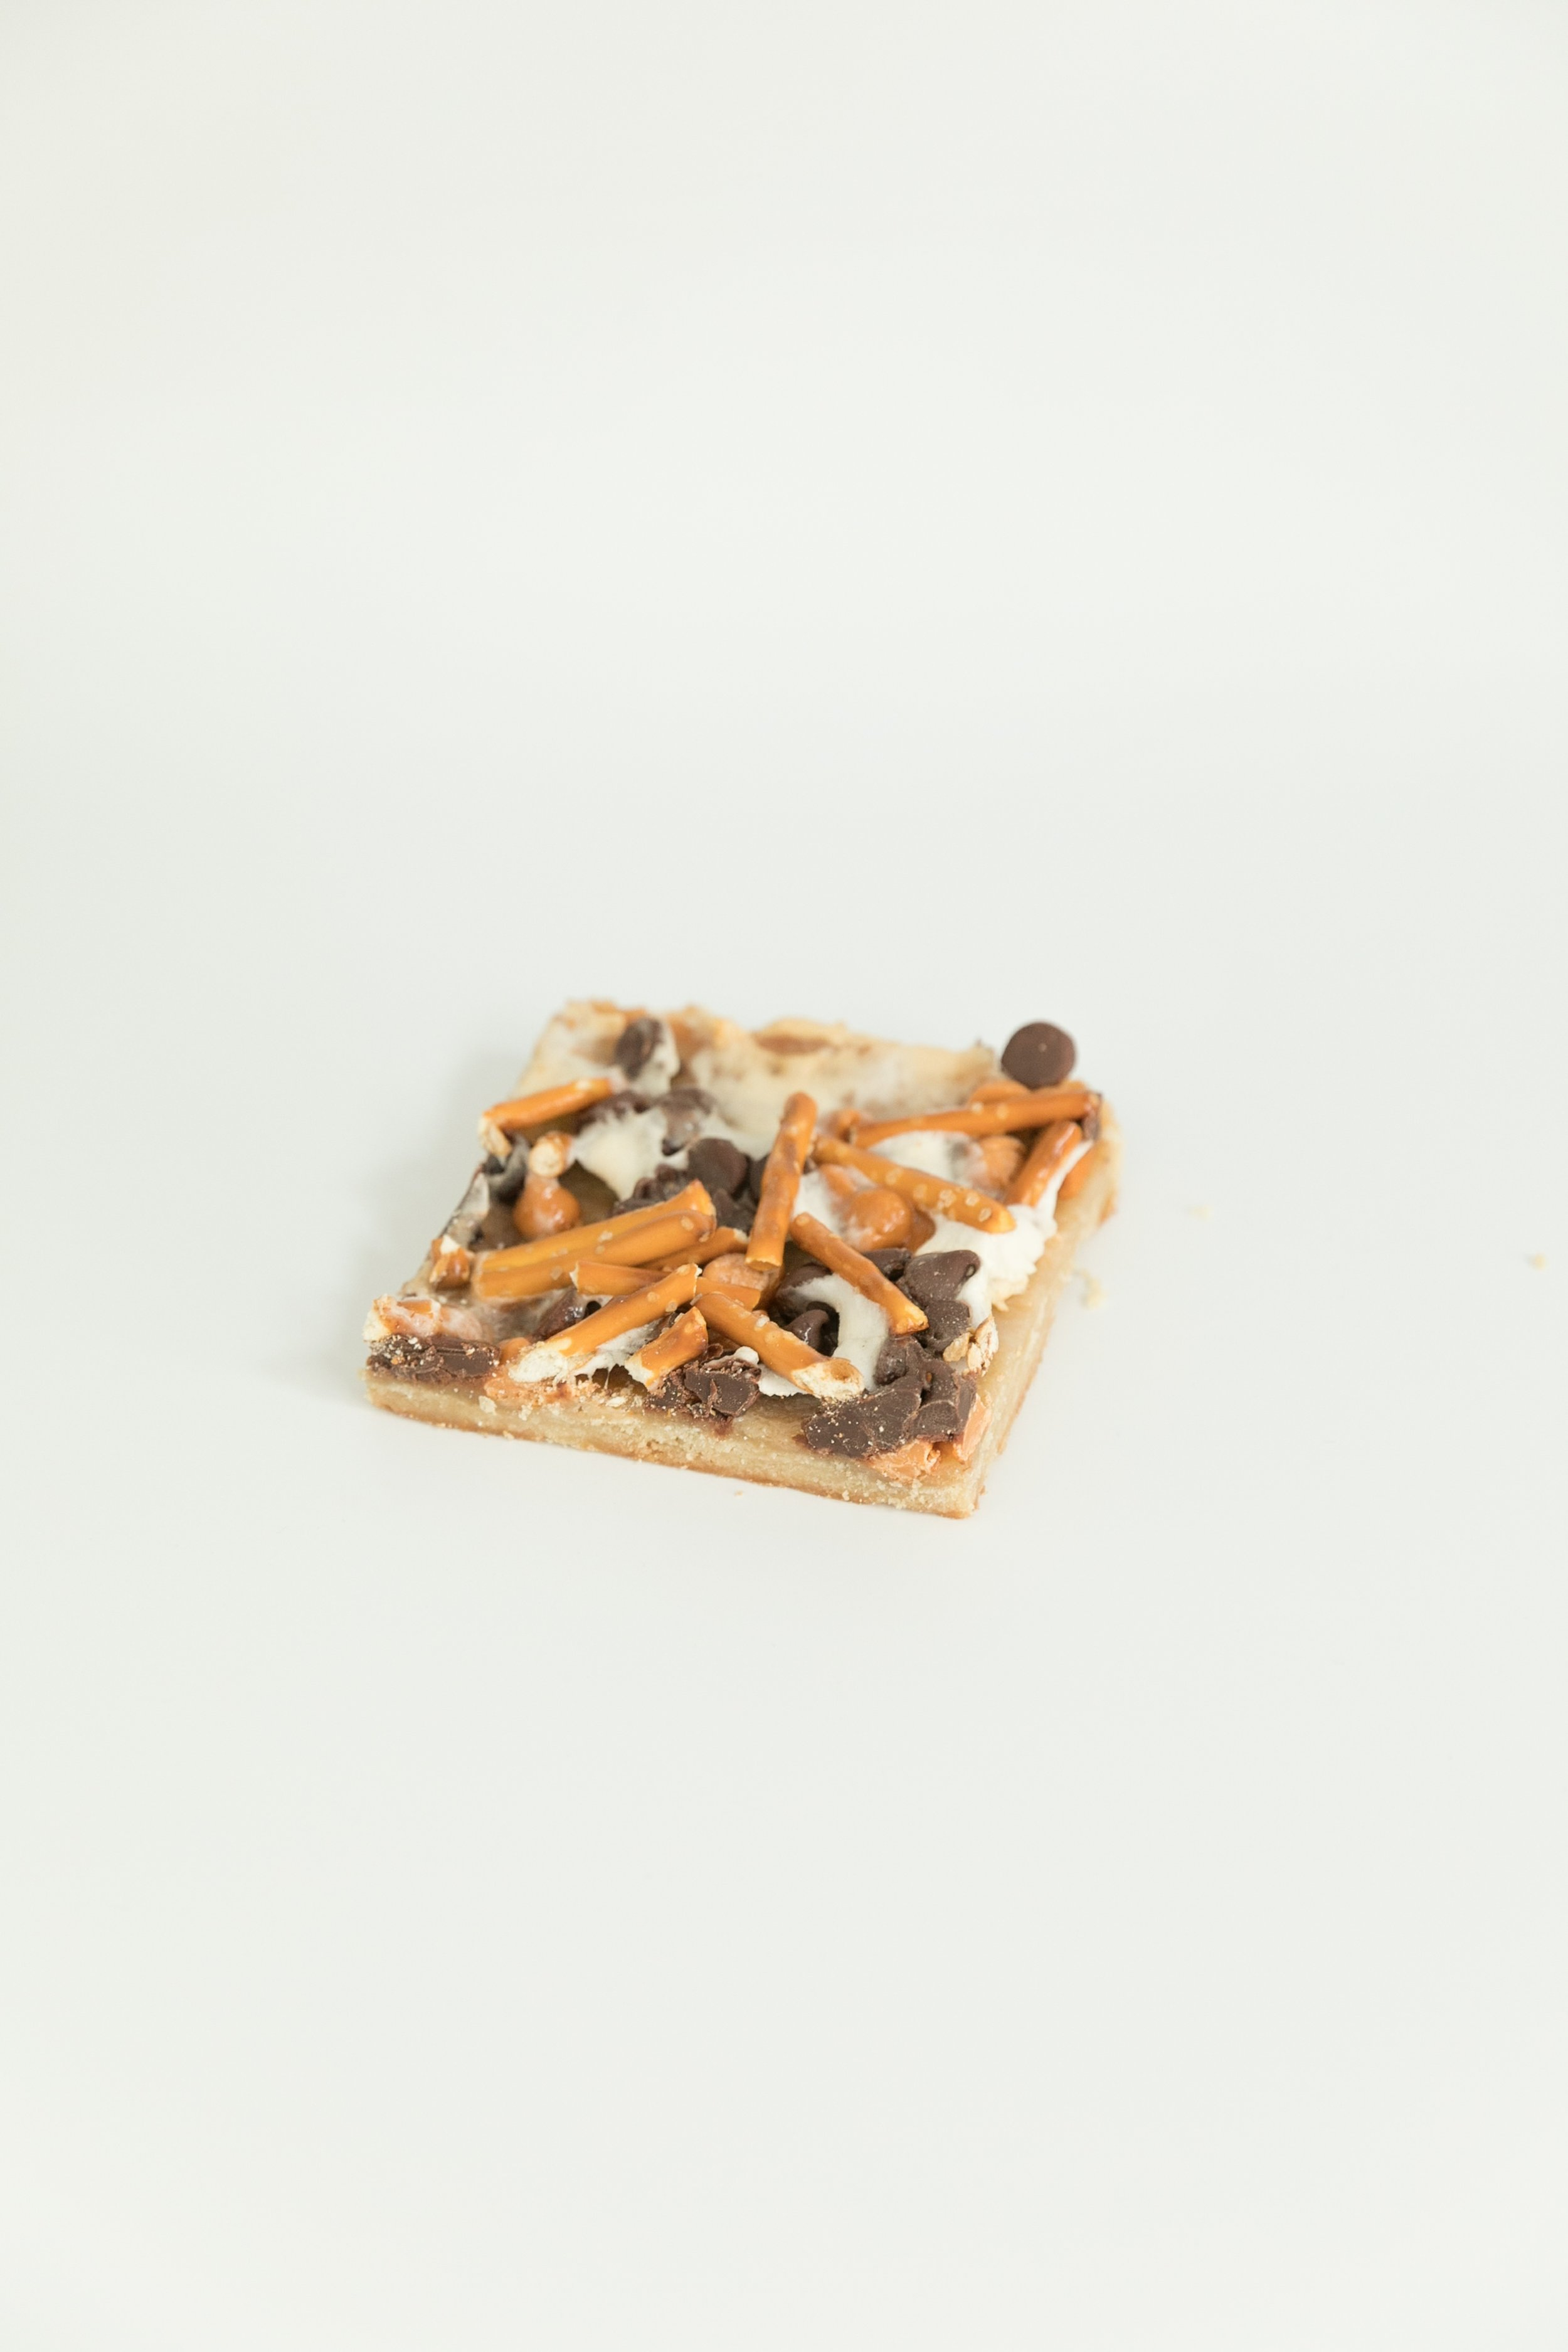 pizza bars topped with pretzels, white chocolate chips, chocolate chips, marshmallows and a cookie bottom.